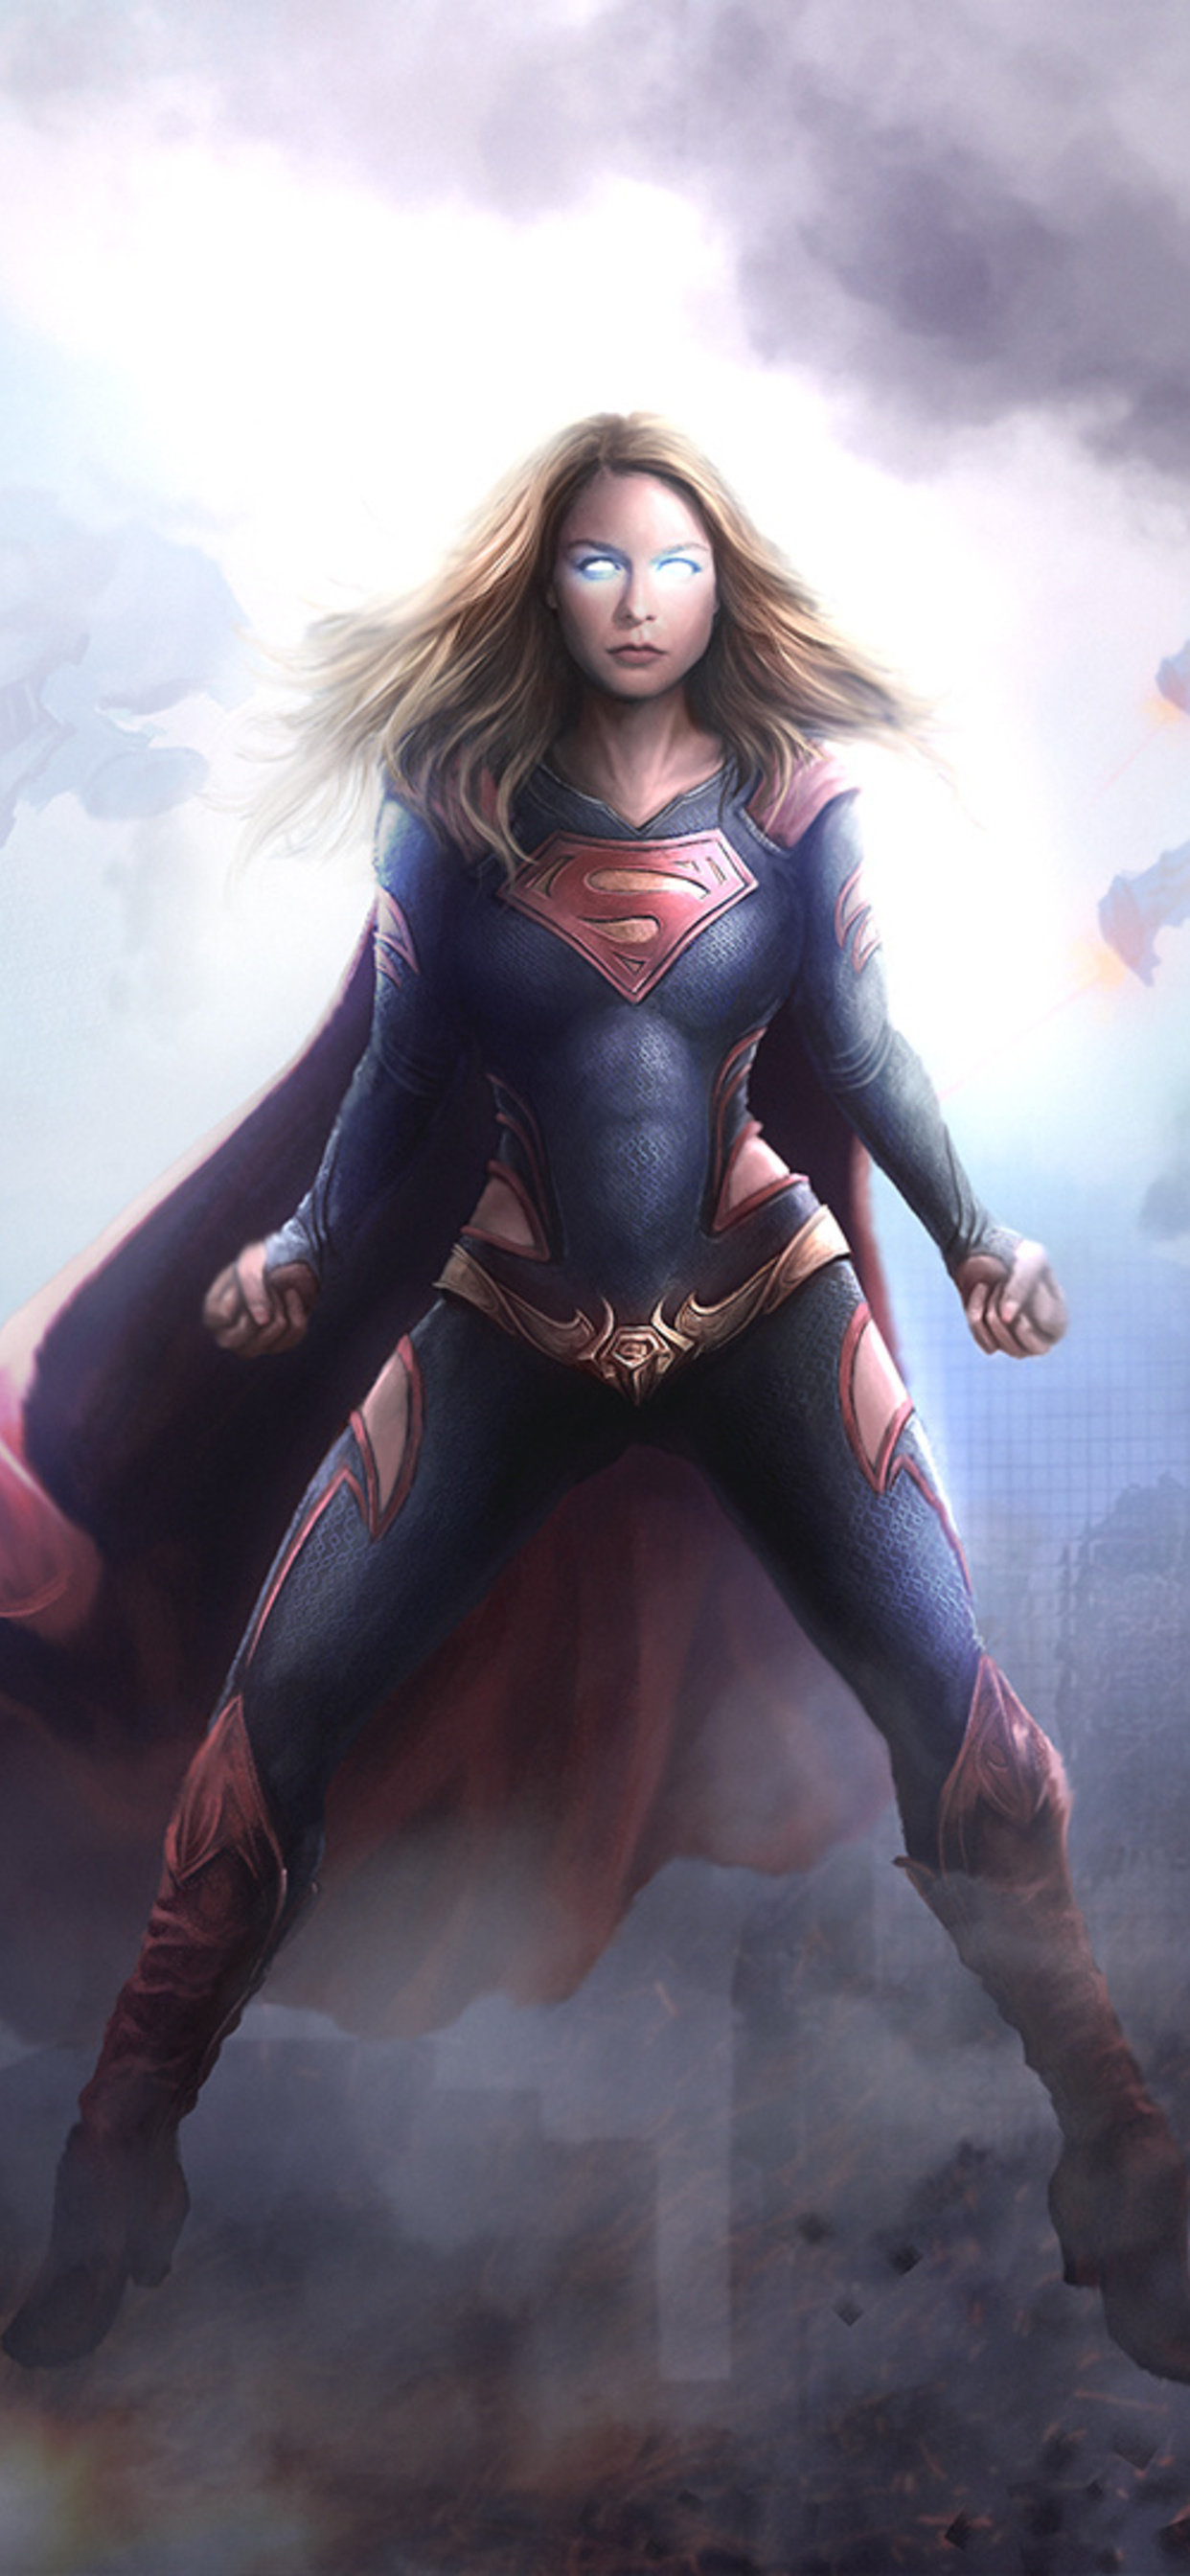 1242x2688 Supergirl Arts 2018 Iphone Xs Max Hd 4k Wallpapers